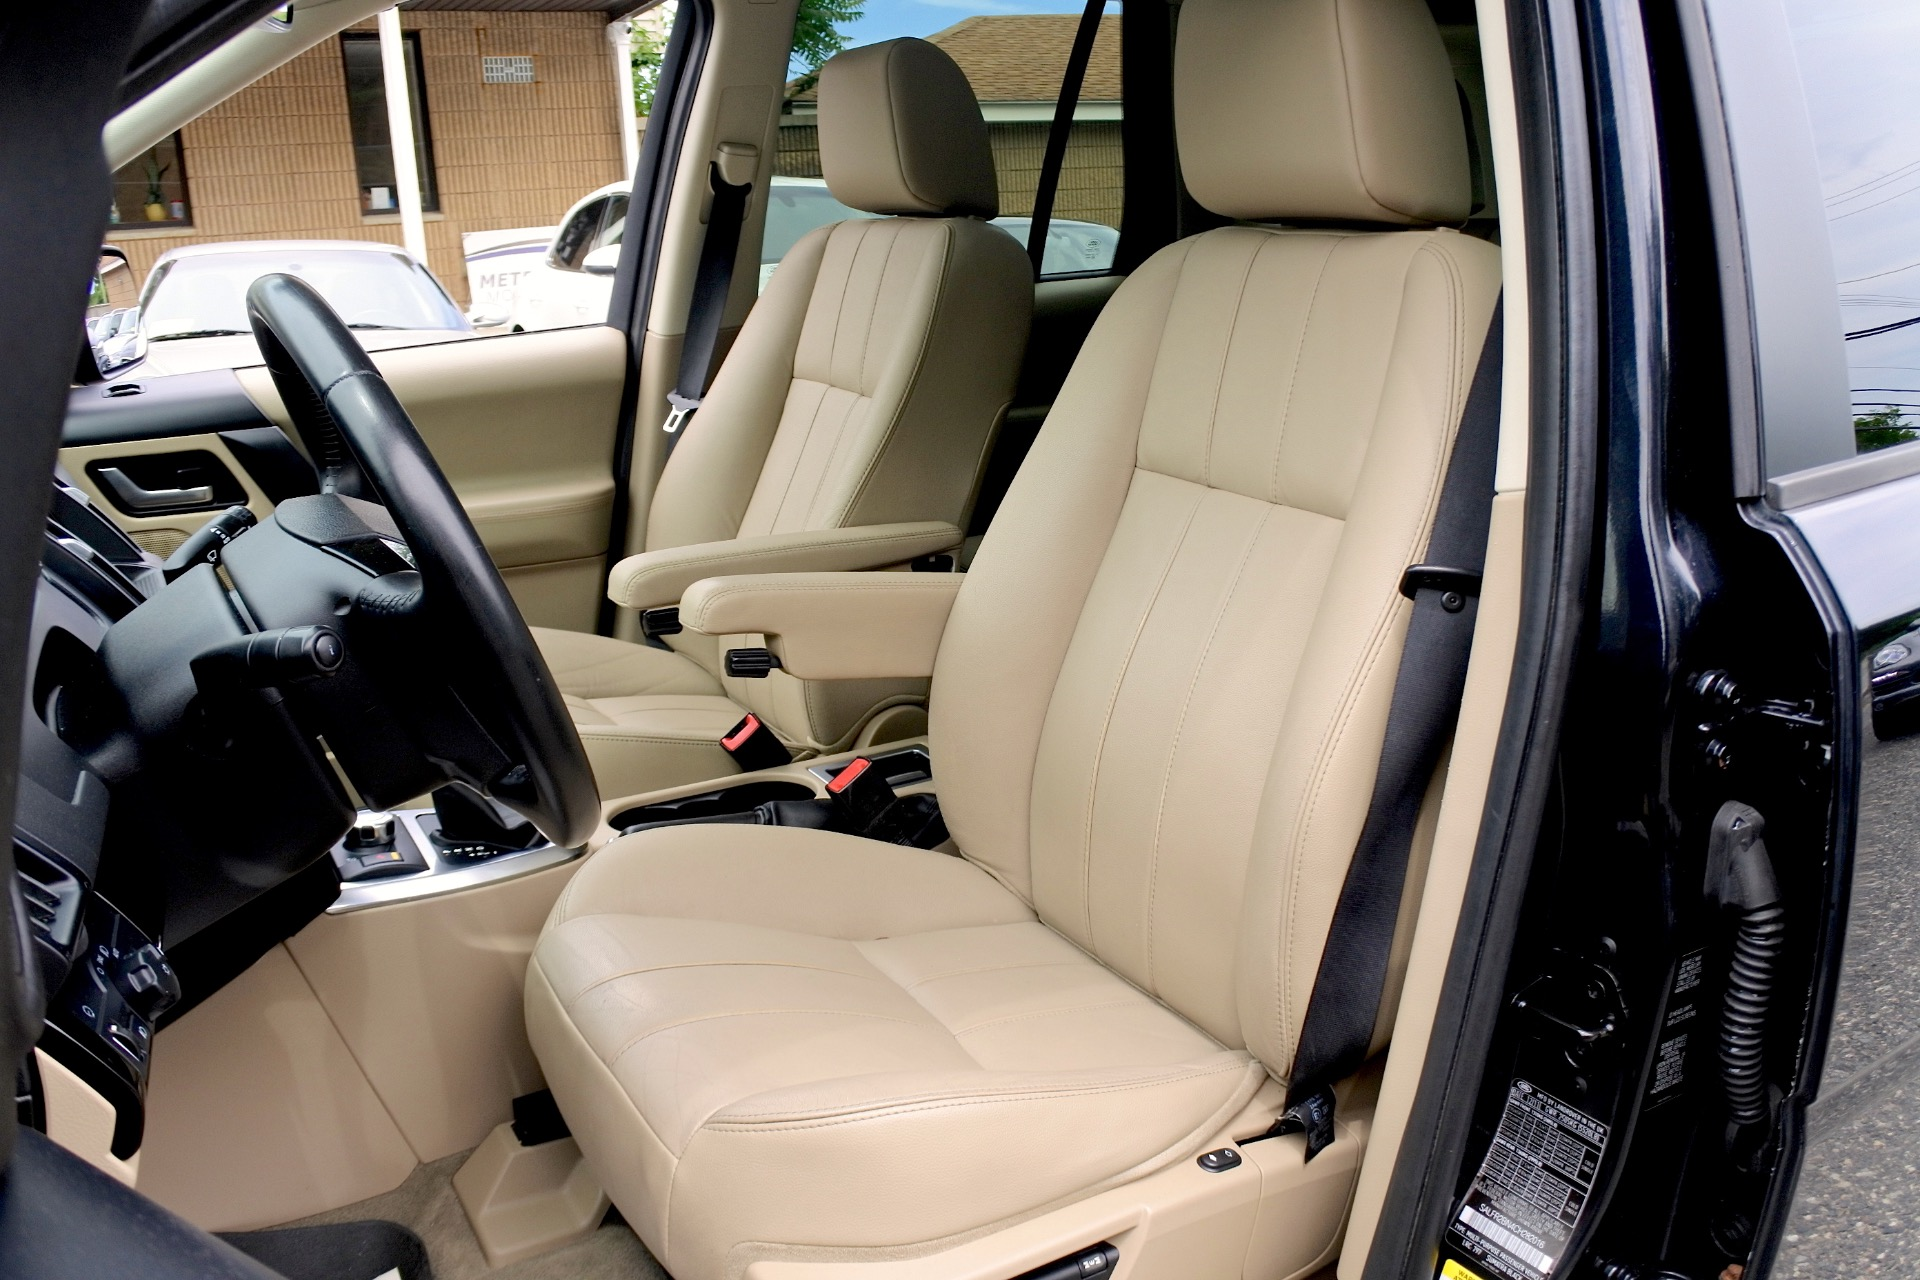 Used 2012 Land Rover Lr2 HSE AWD Used 2012 Land Rover Lr2 HSE AWD for sale  at Metro West Motorcars LLC in Shrewsbury MA 14